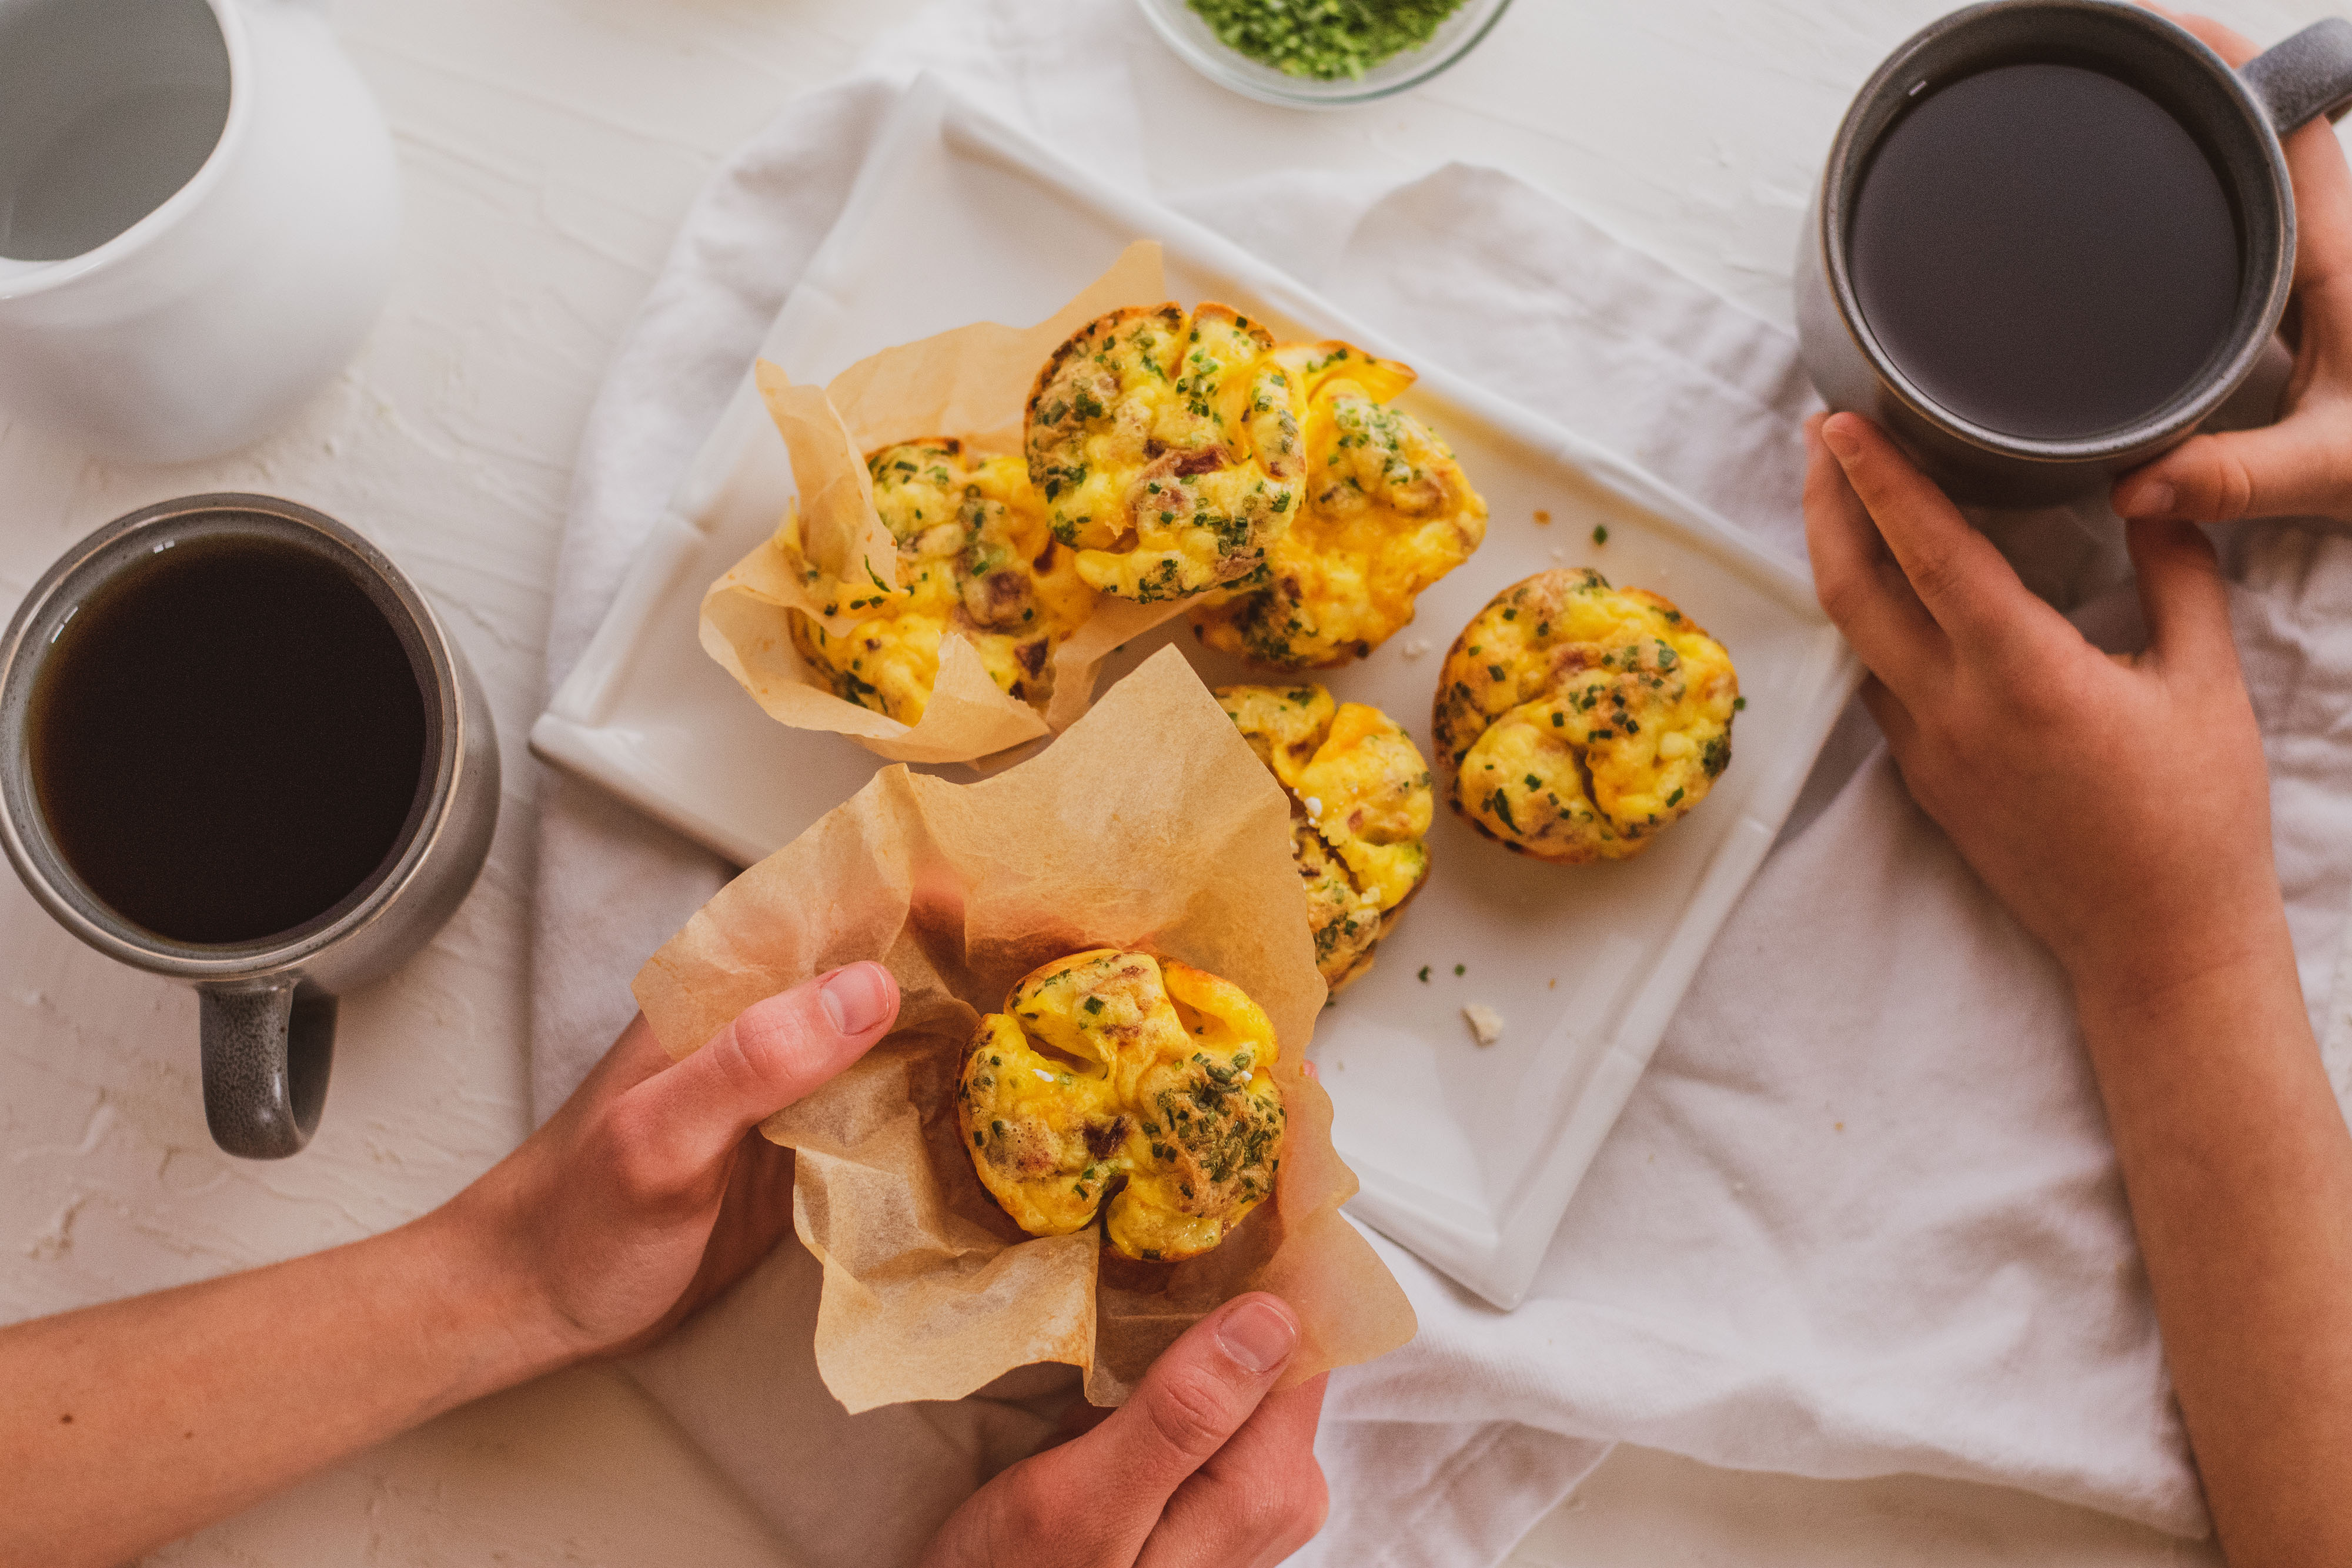 Breakfast muffins on a plate with cups of coffee on the side, and people grabbing some.